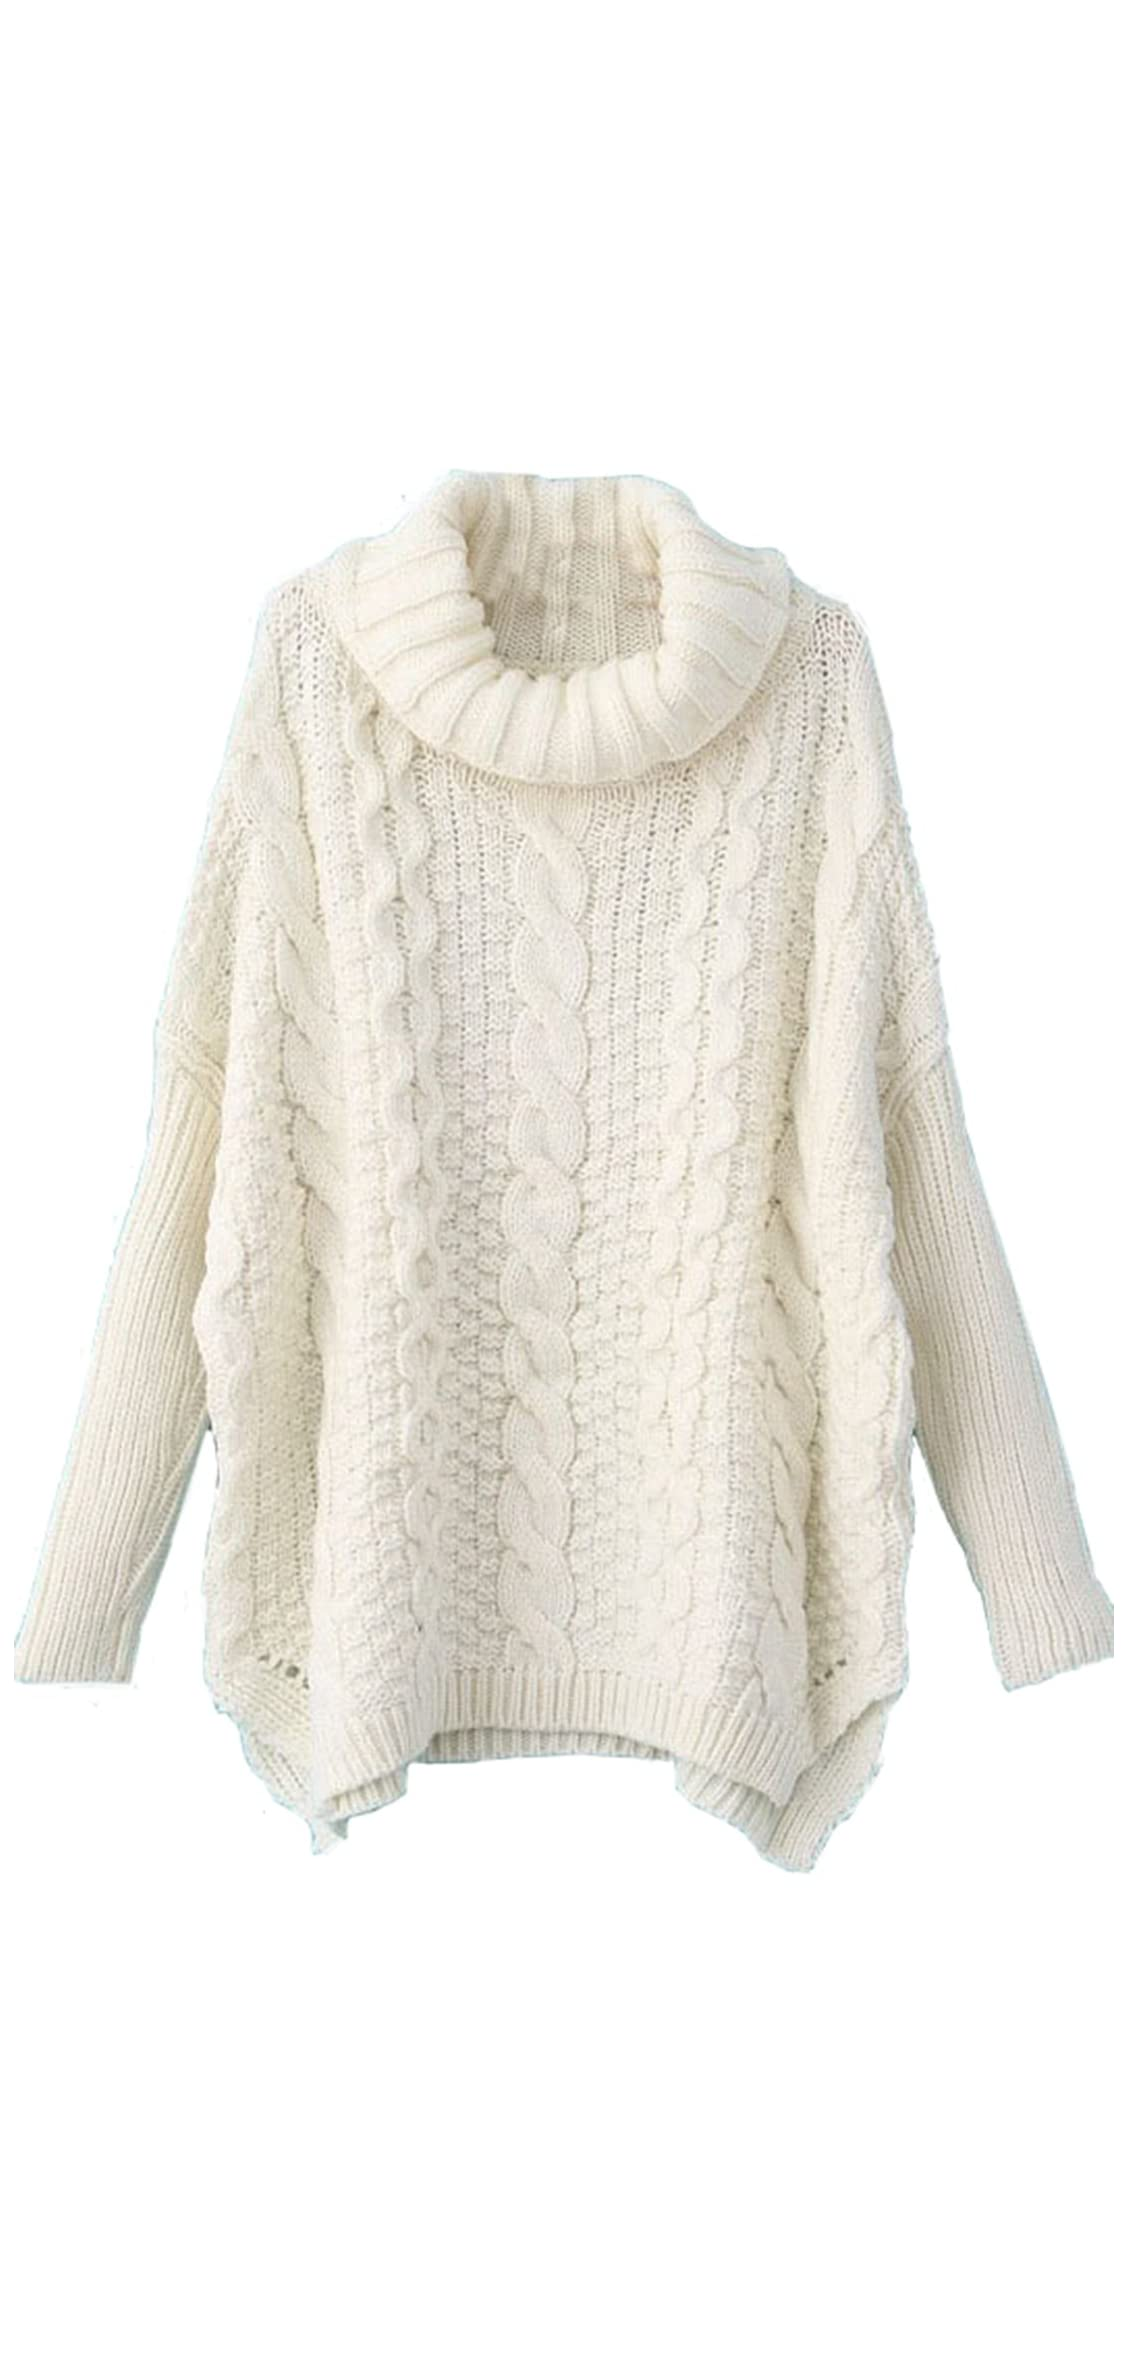 Women's Turtleneck Chunky Cable Knit Basic Sweater